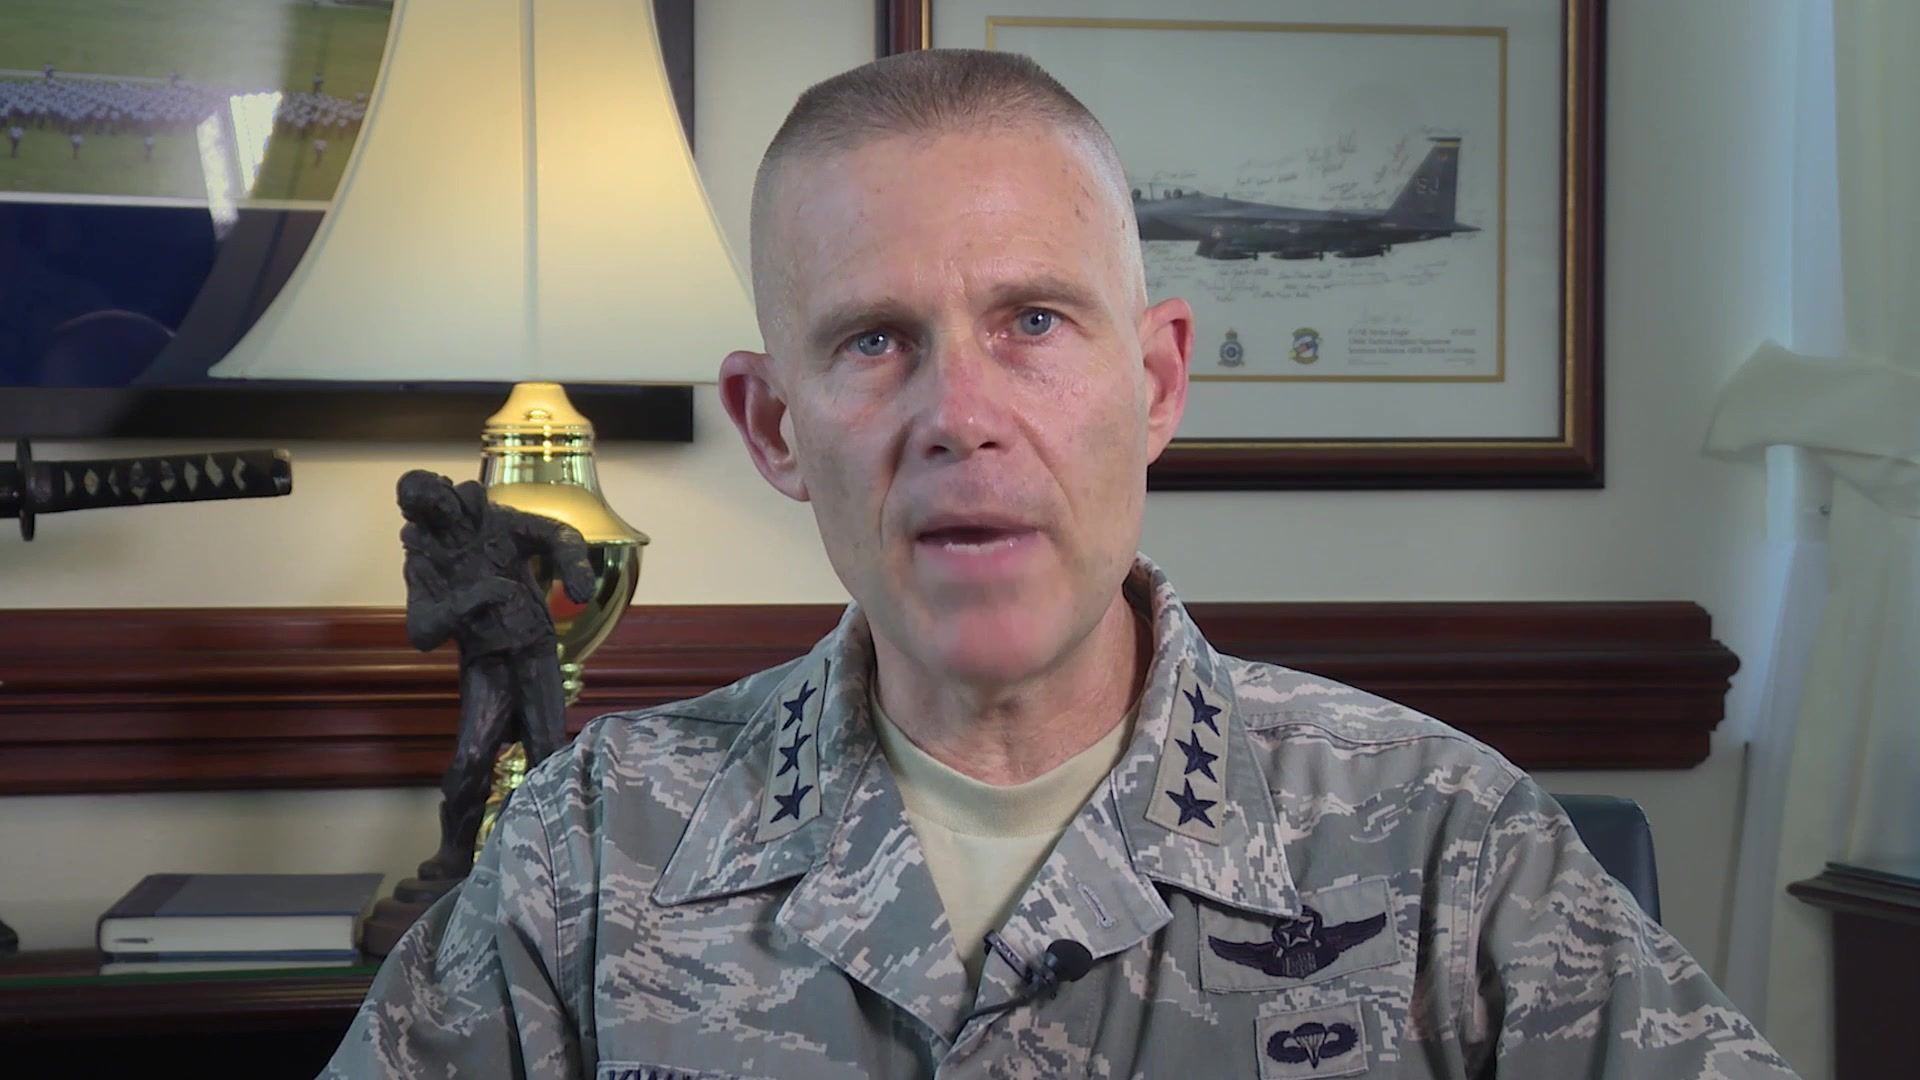 Changing Paradigms... Teach them how to do a job in the context of a mission   Check out the latest Commander's Intent video from Lt. Gen. Steve Kwast where he discusses the importance of communicating with purpose